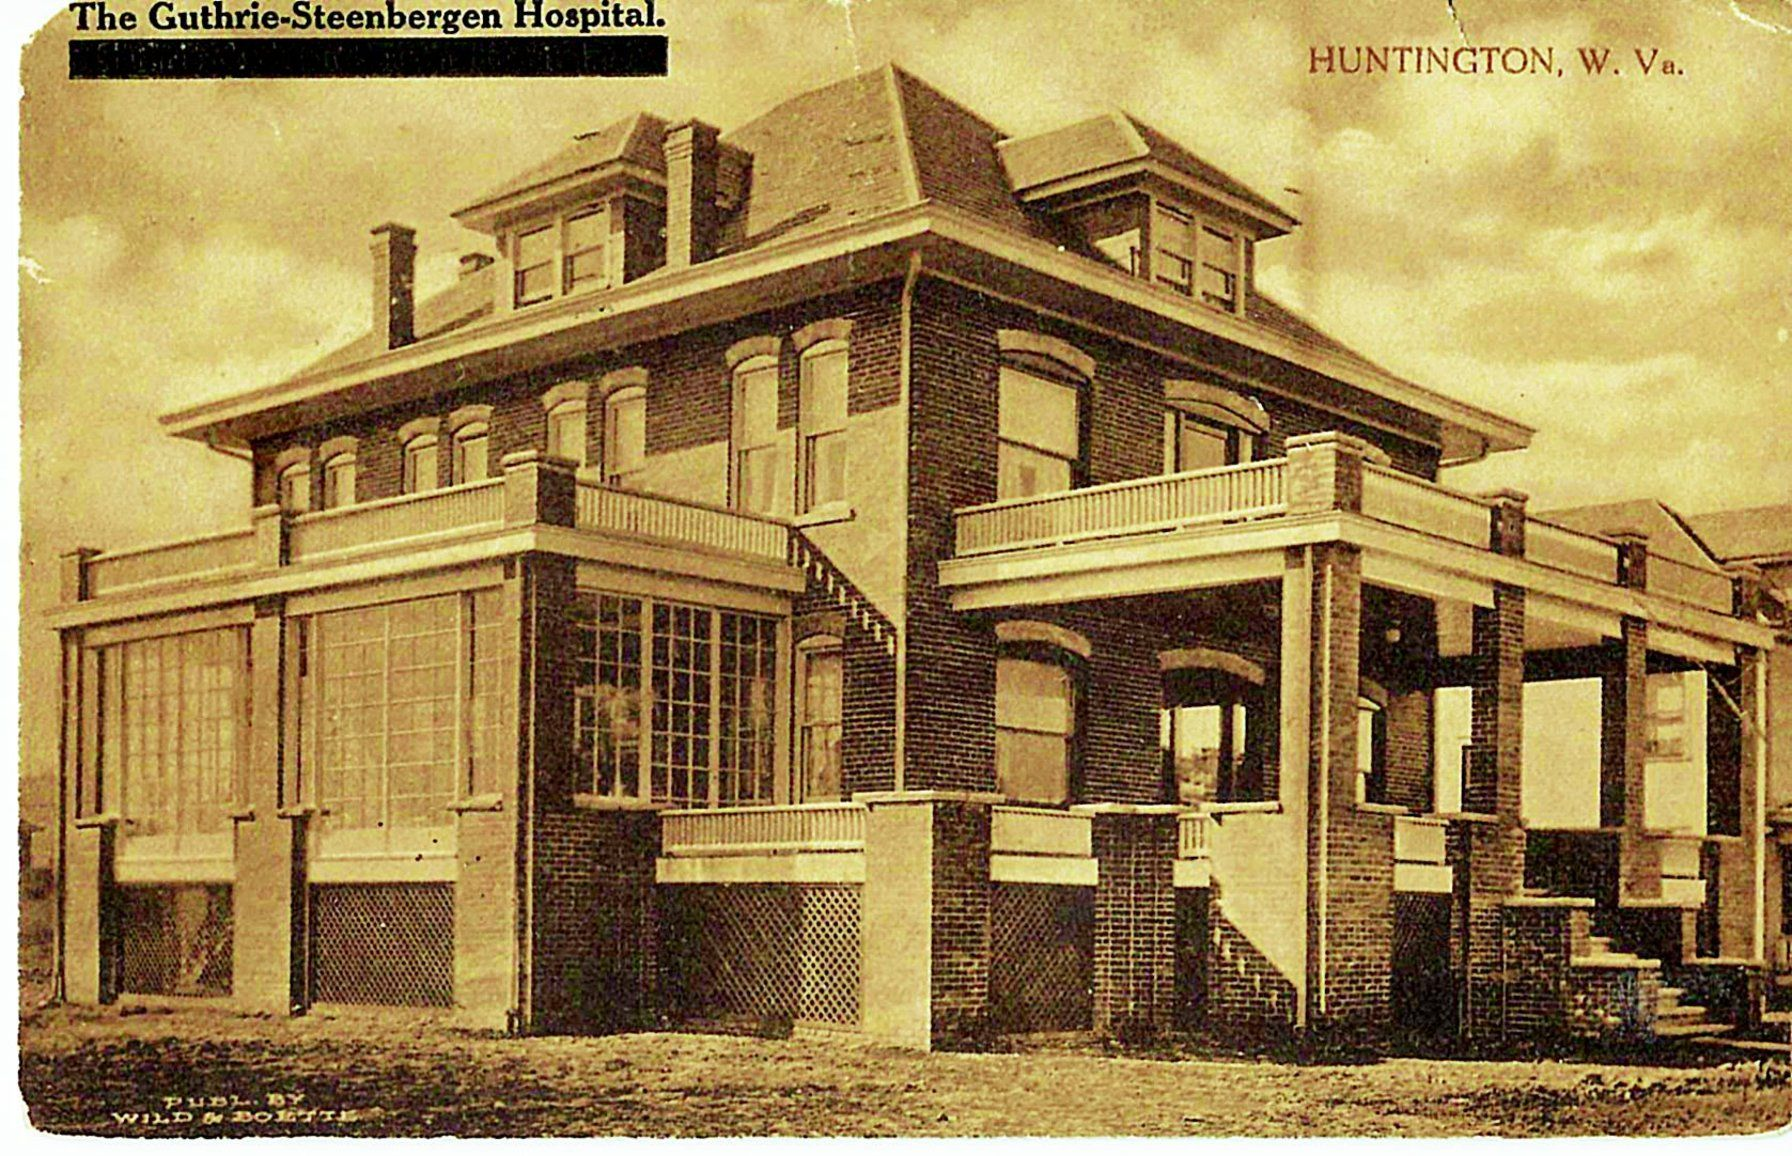 Lost Huntington: Guthrie-Steenburgen Hospital